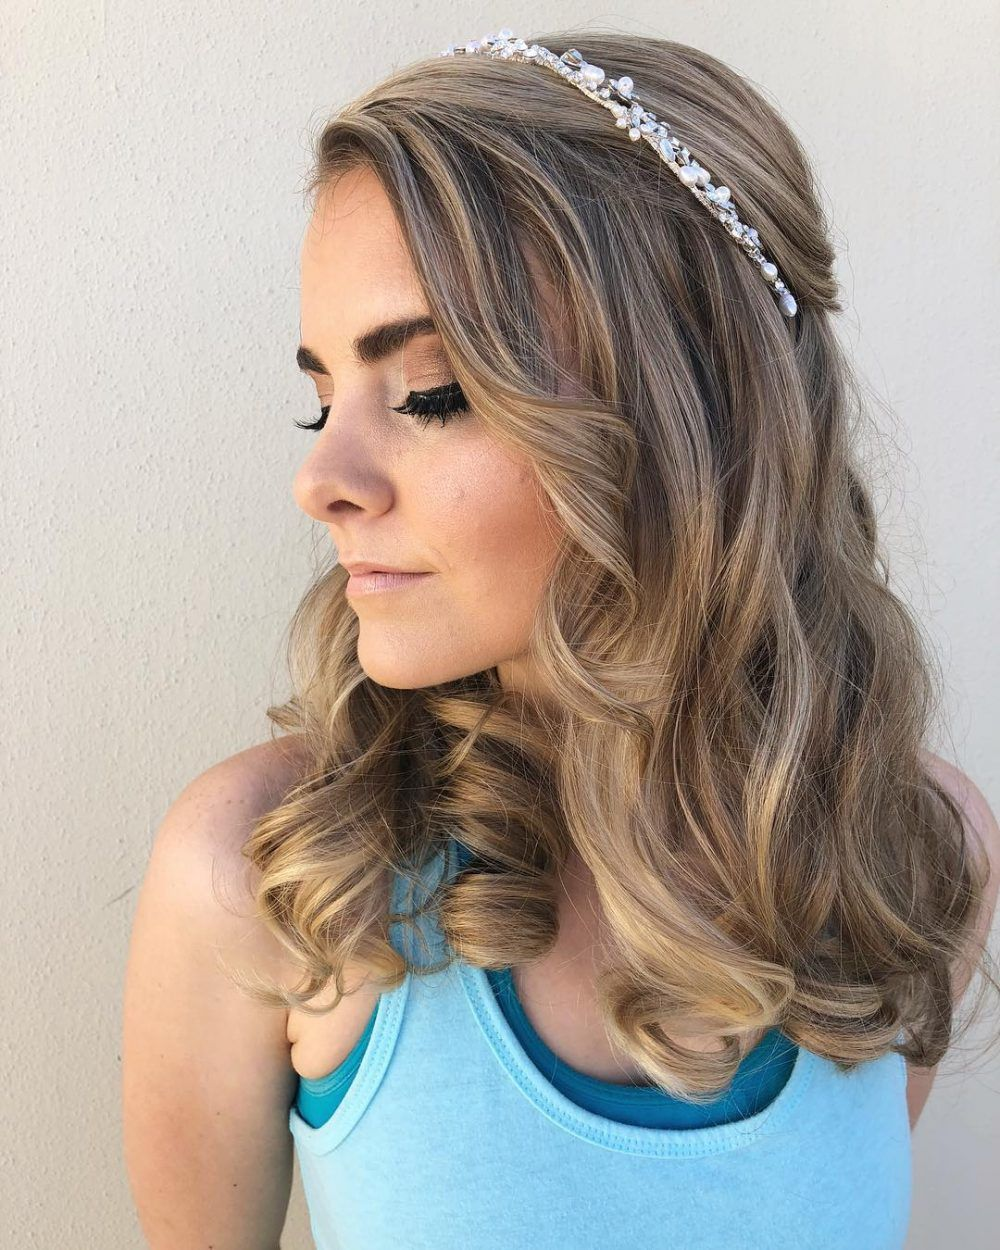 42+ Updos For Medium Length Hair To Inspire Your Prom Look ...